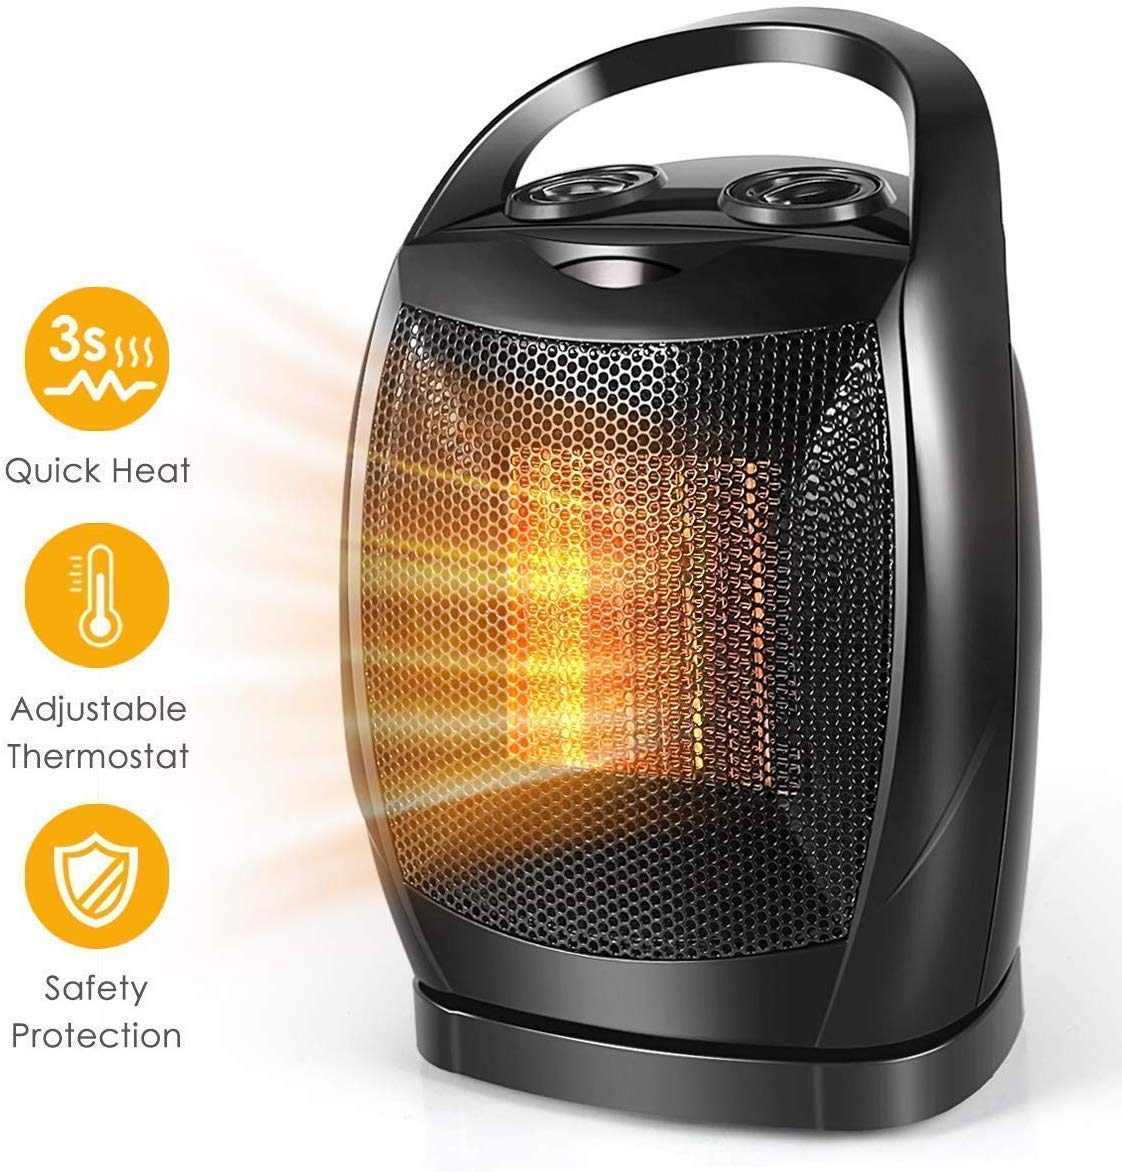 Space Heater, 1500W Fast Heat Small Portable Ceramic Space Heater for Office Small Room Desk, Multi Thermostat, Overheat Tip-Over Protection for Indoor Use